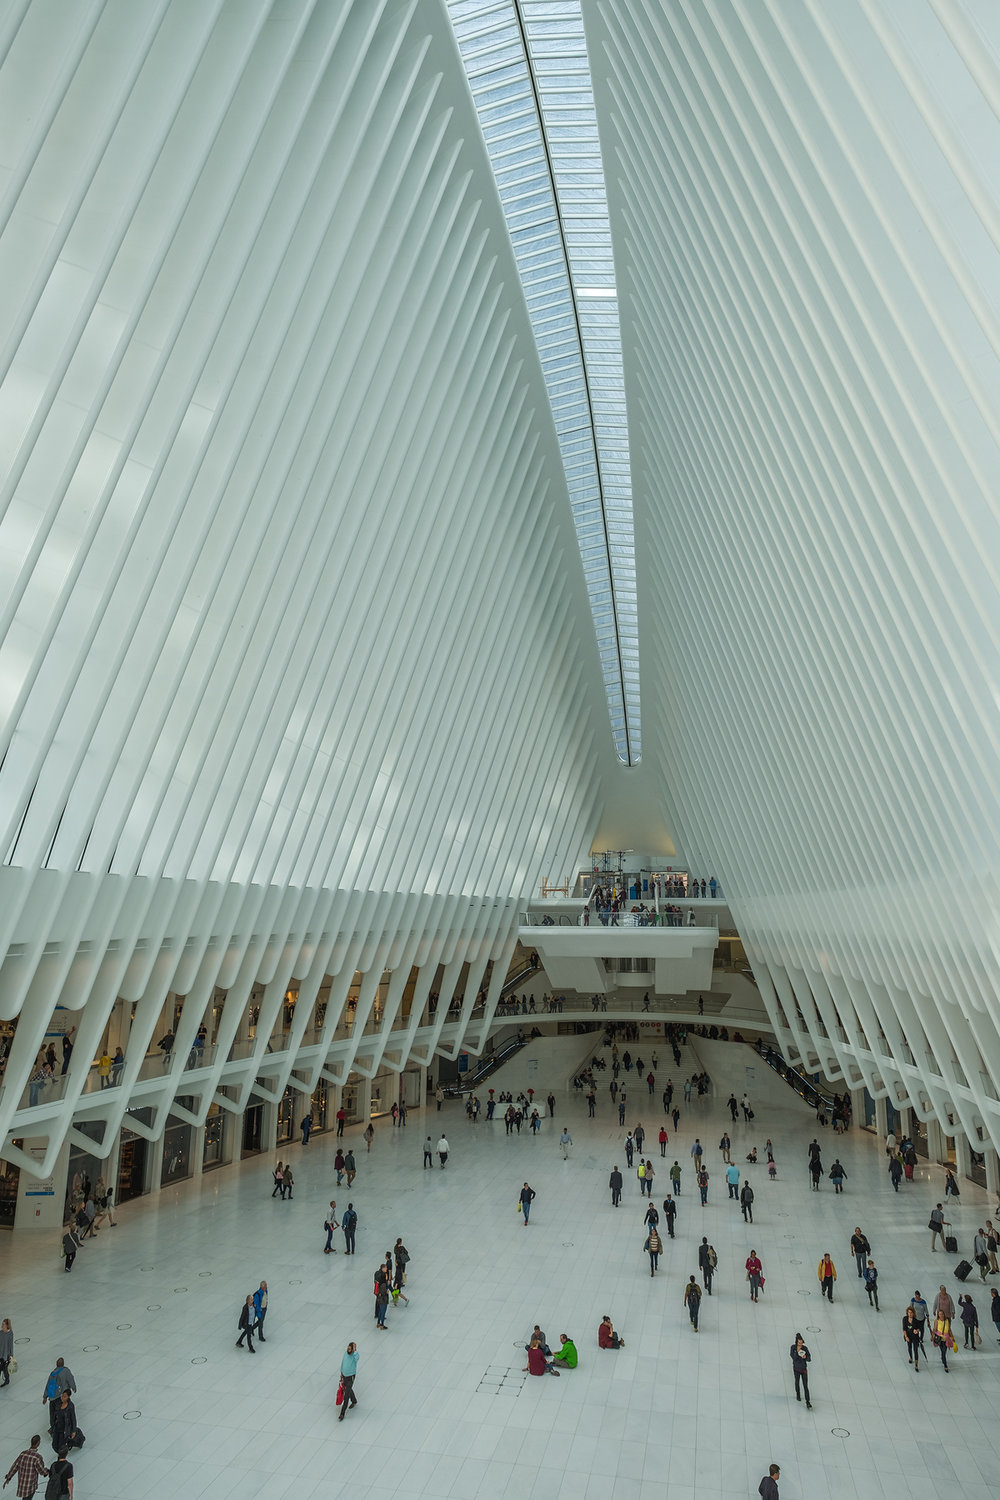 The Oculus at The World Trade Center.